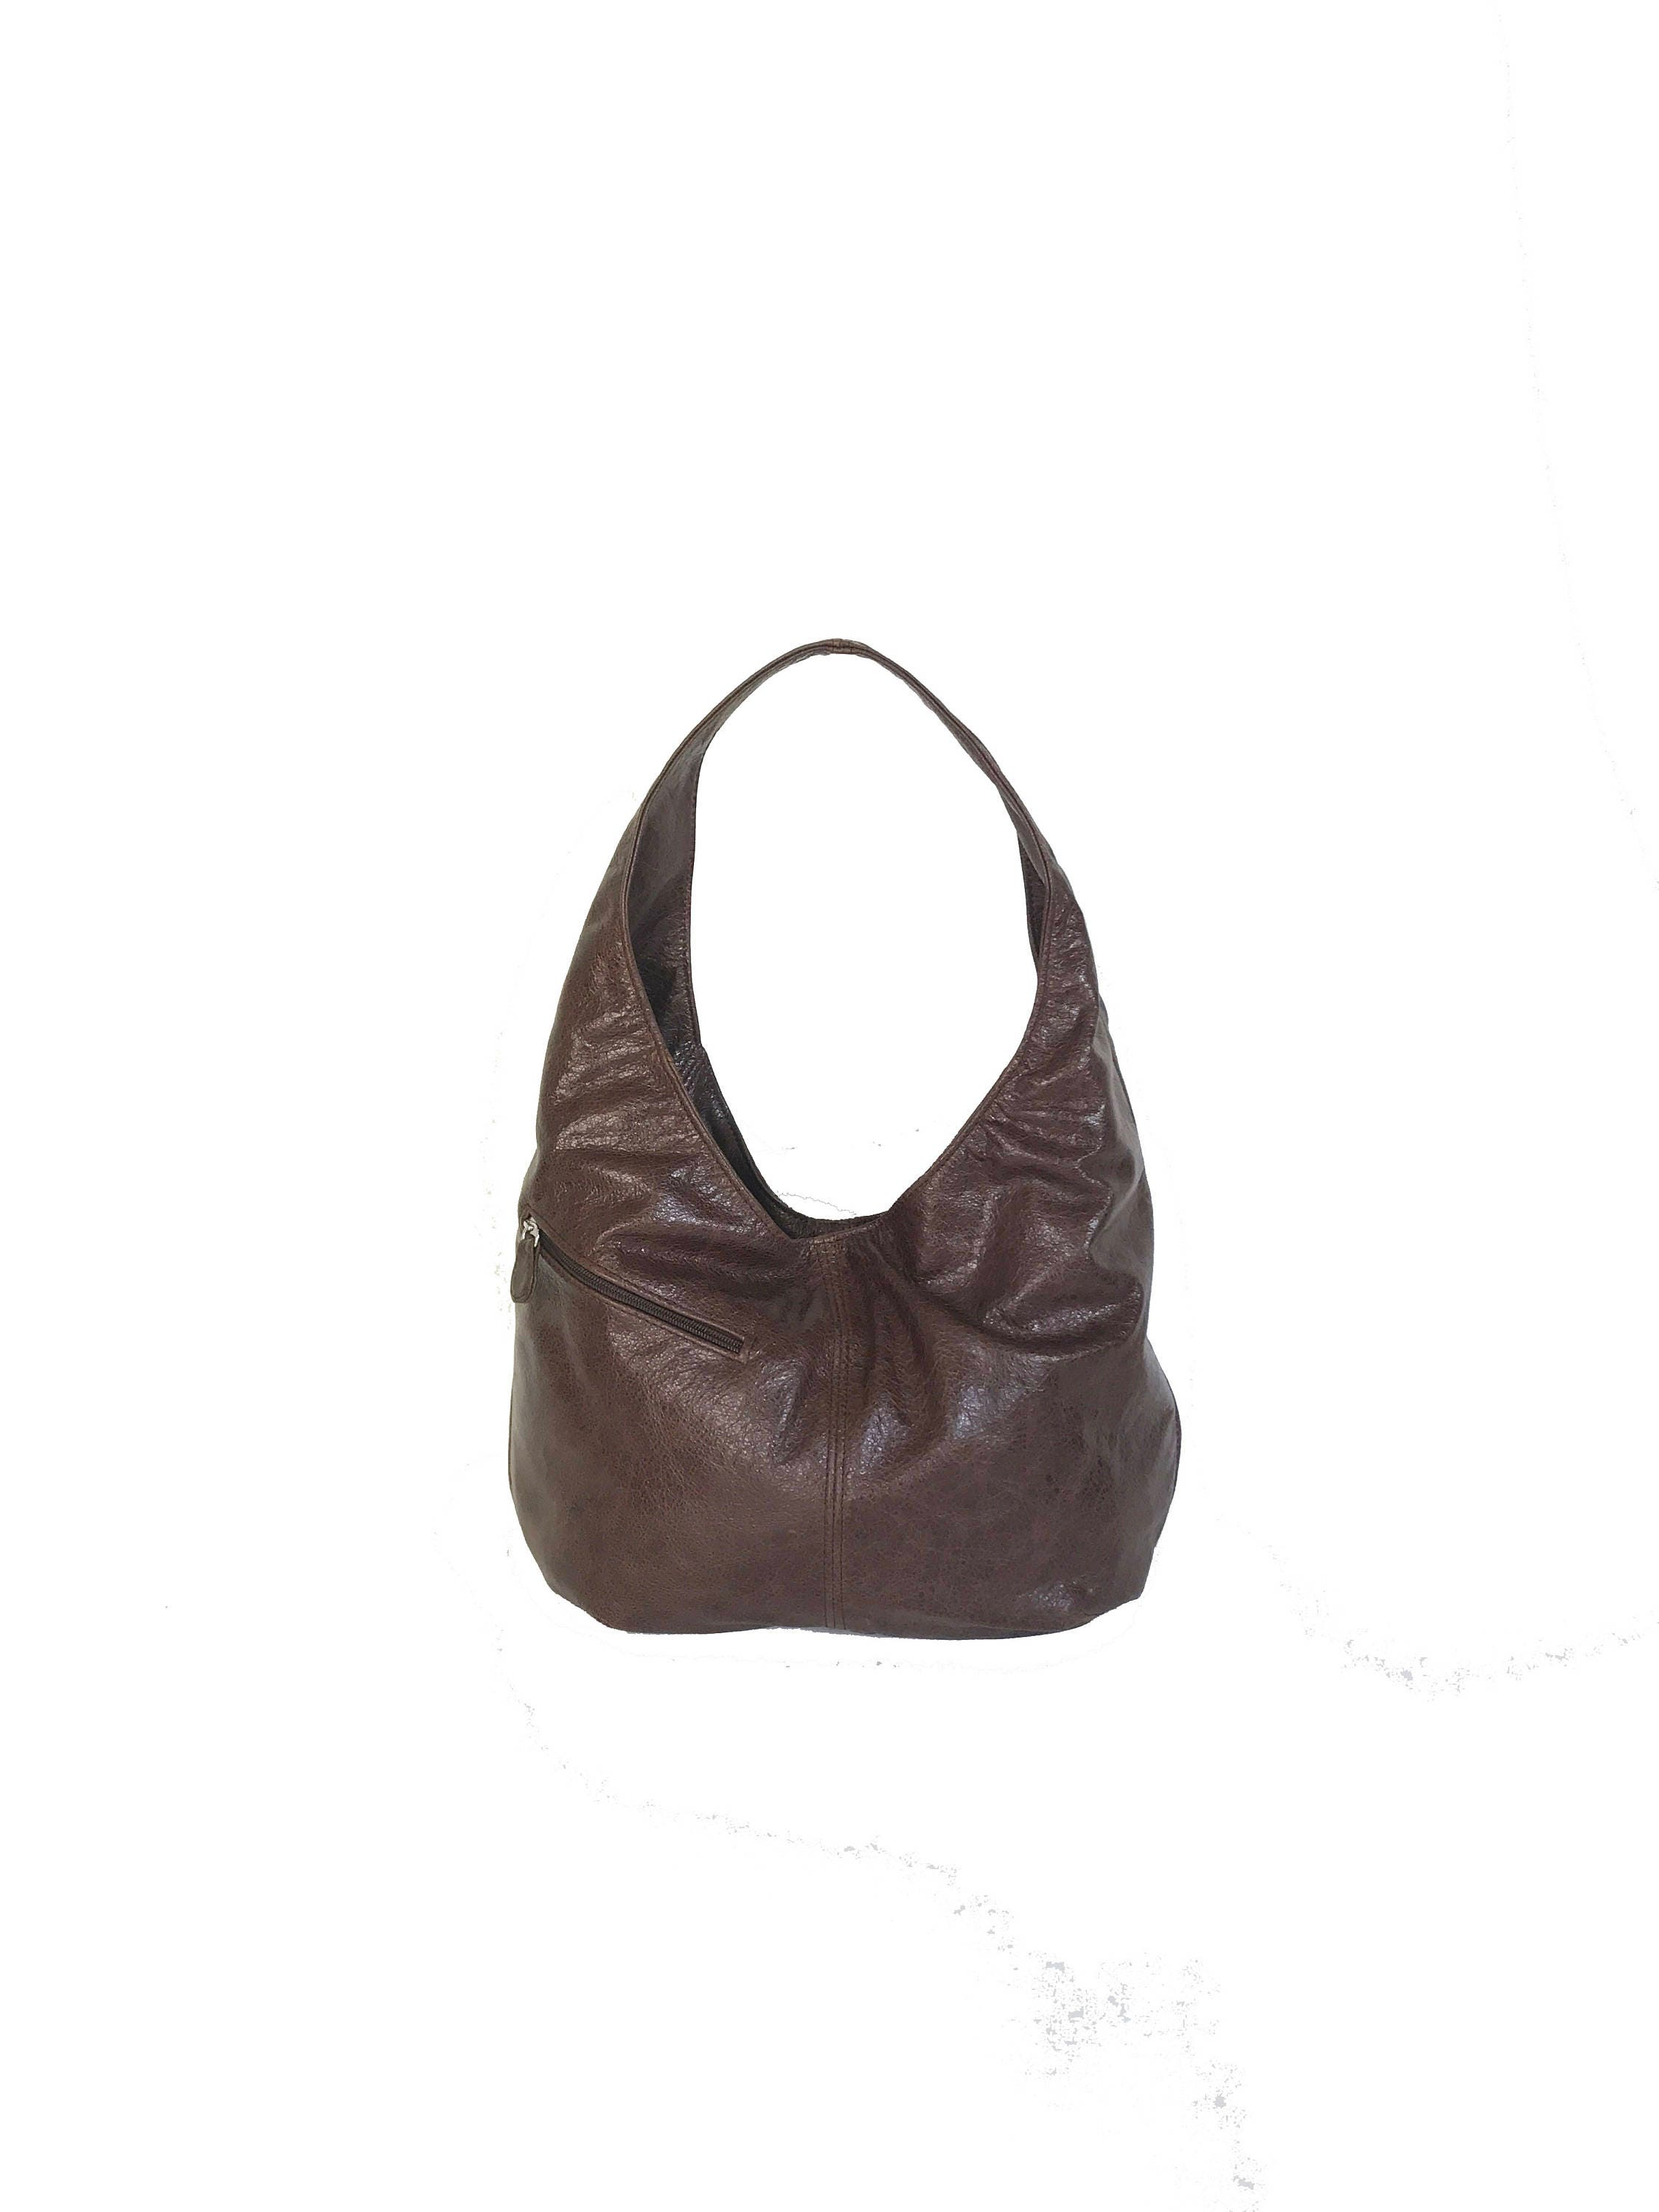 f20008f27c Distressed Brown Leather Hobo Bag with Pockets Fashion Women